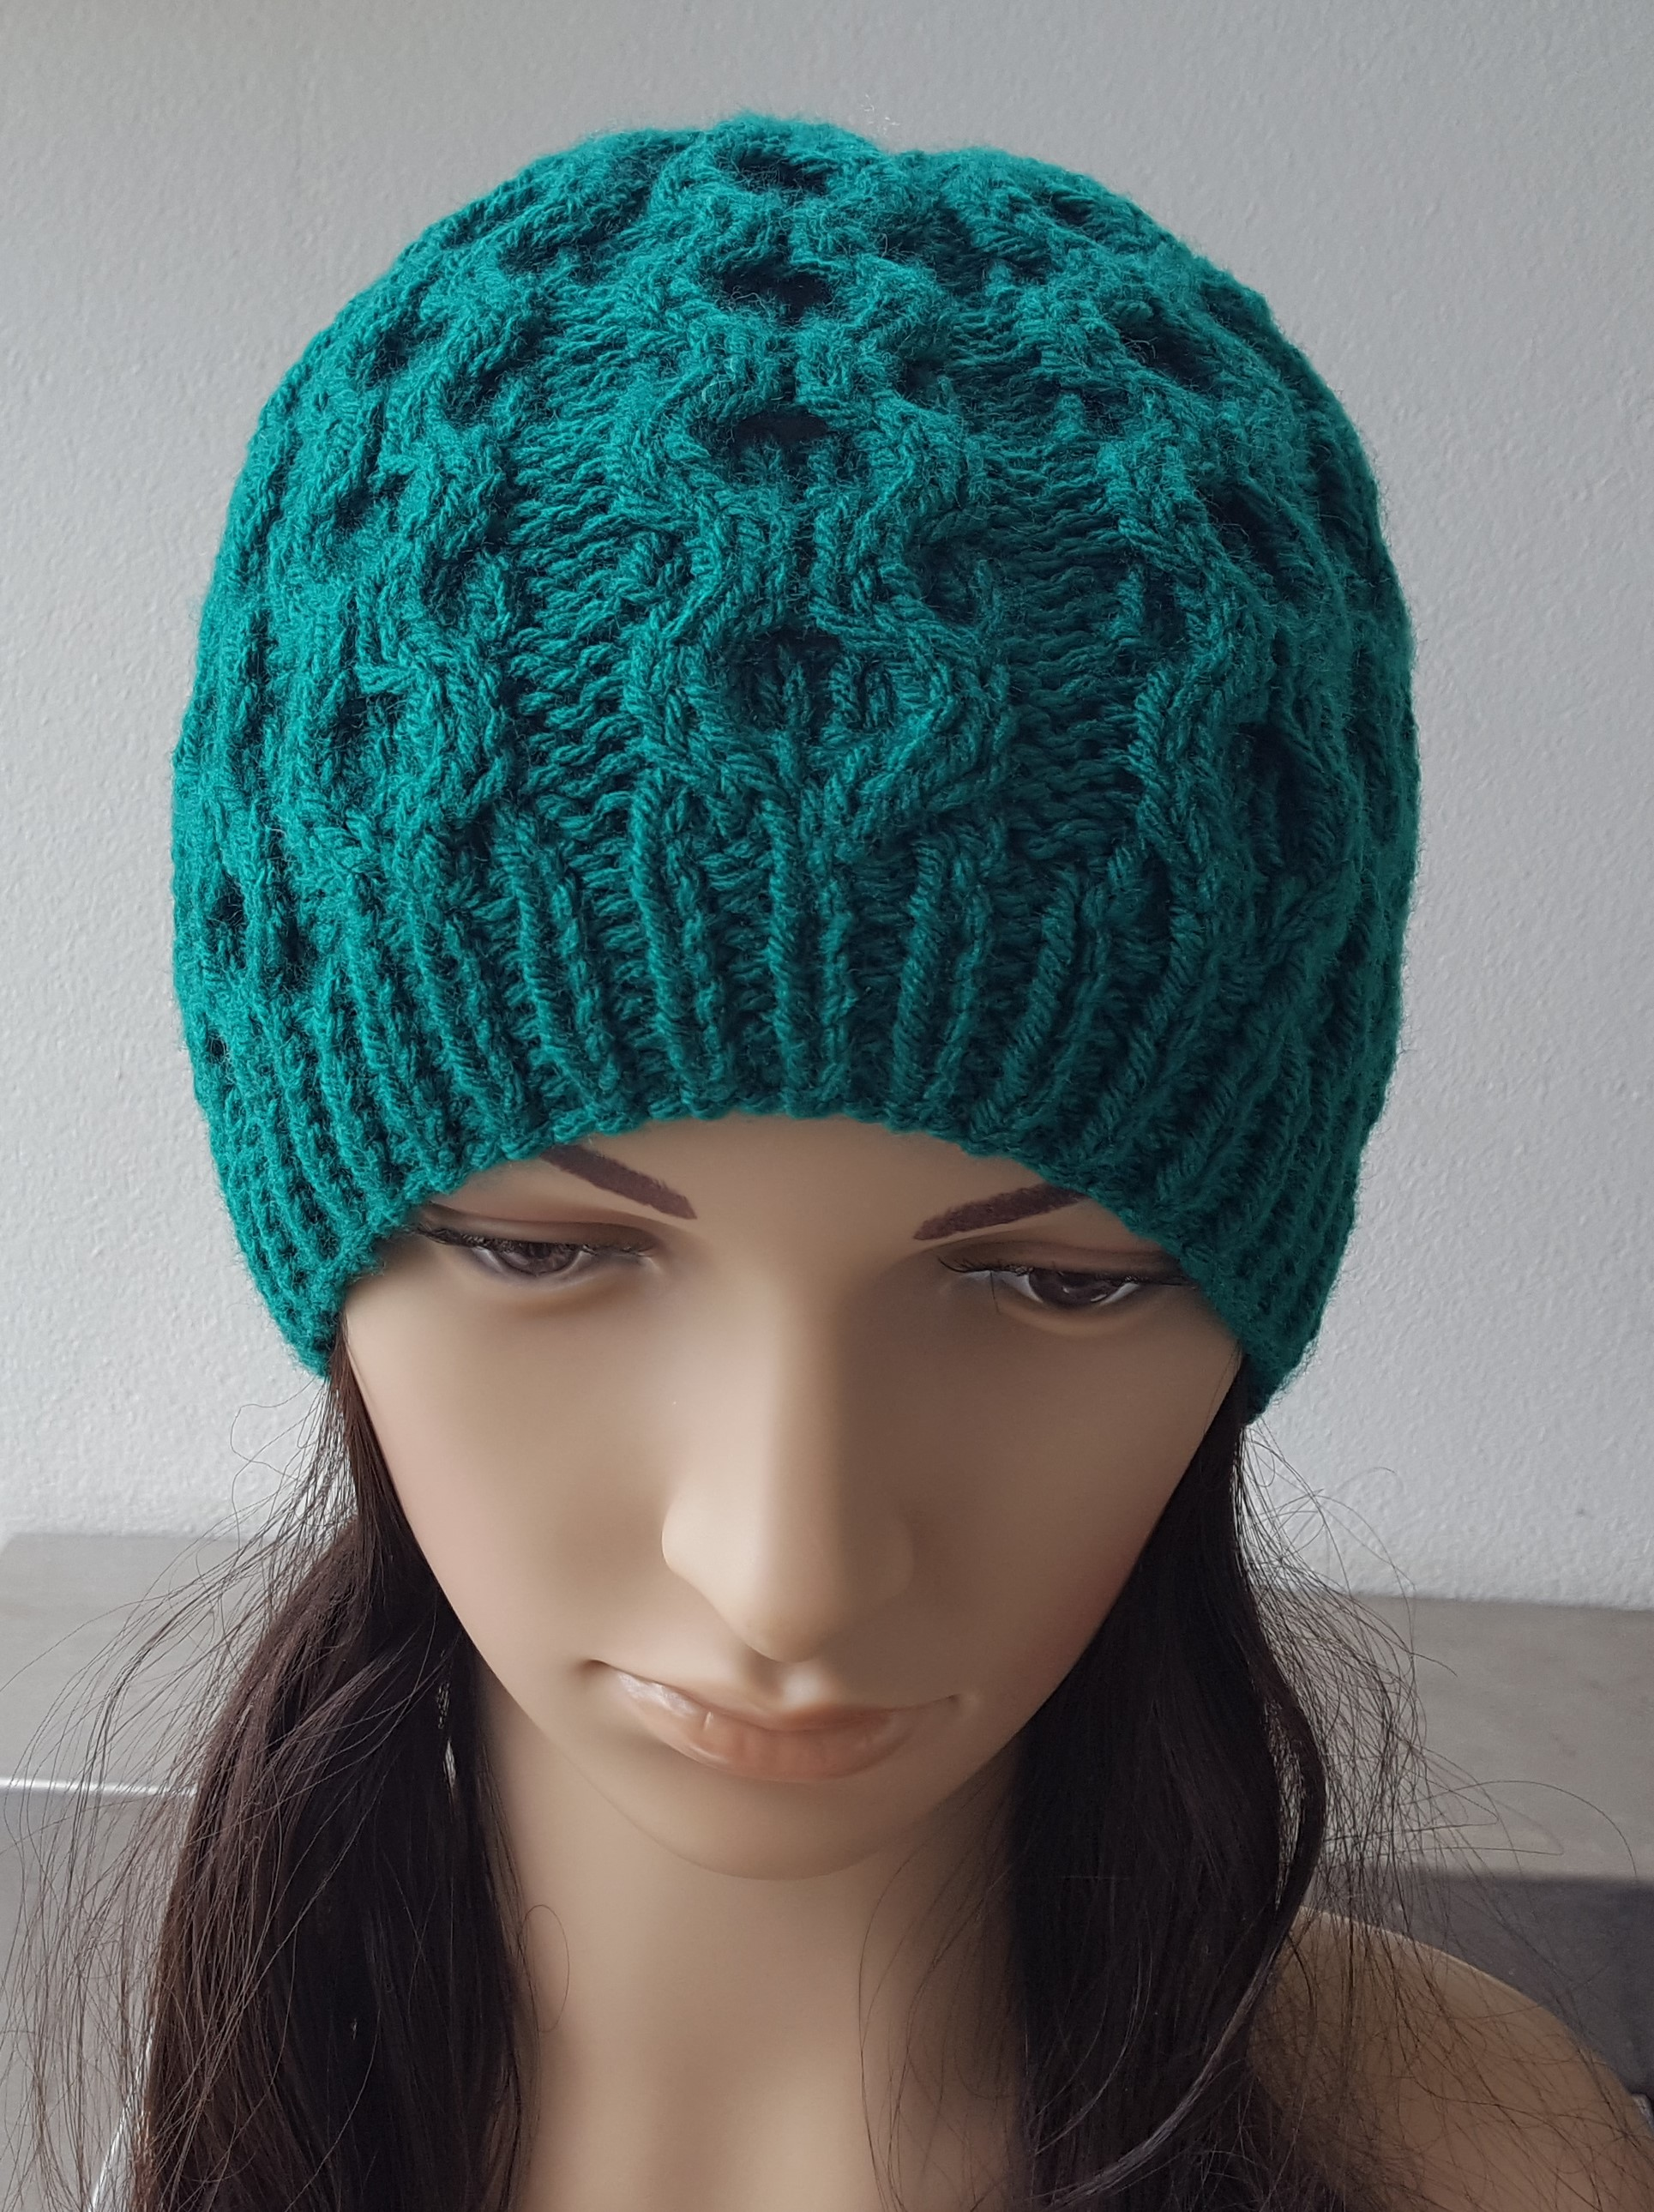 12ply round cable beanie, sizes 2 years to lady - Avery